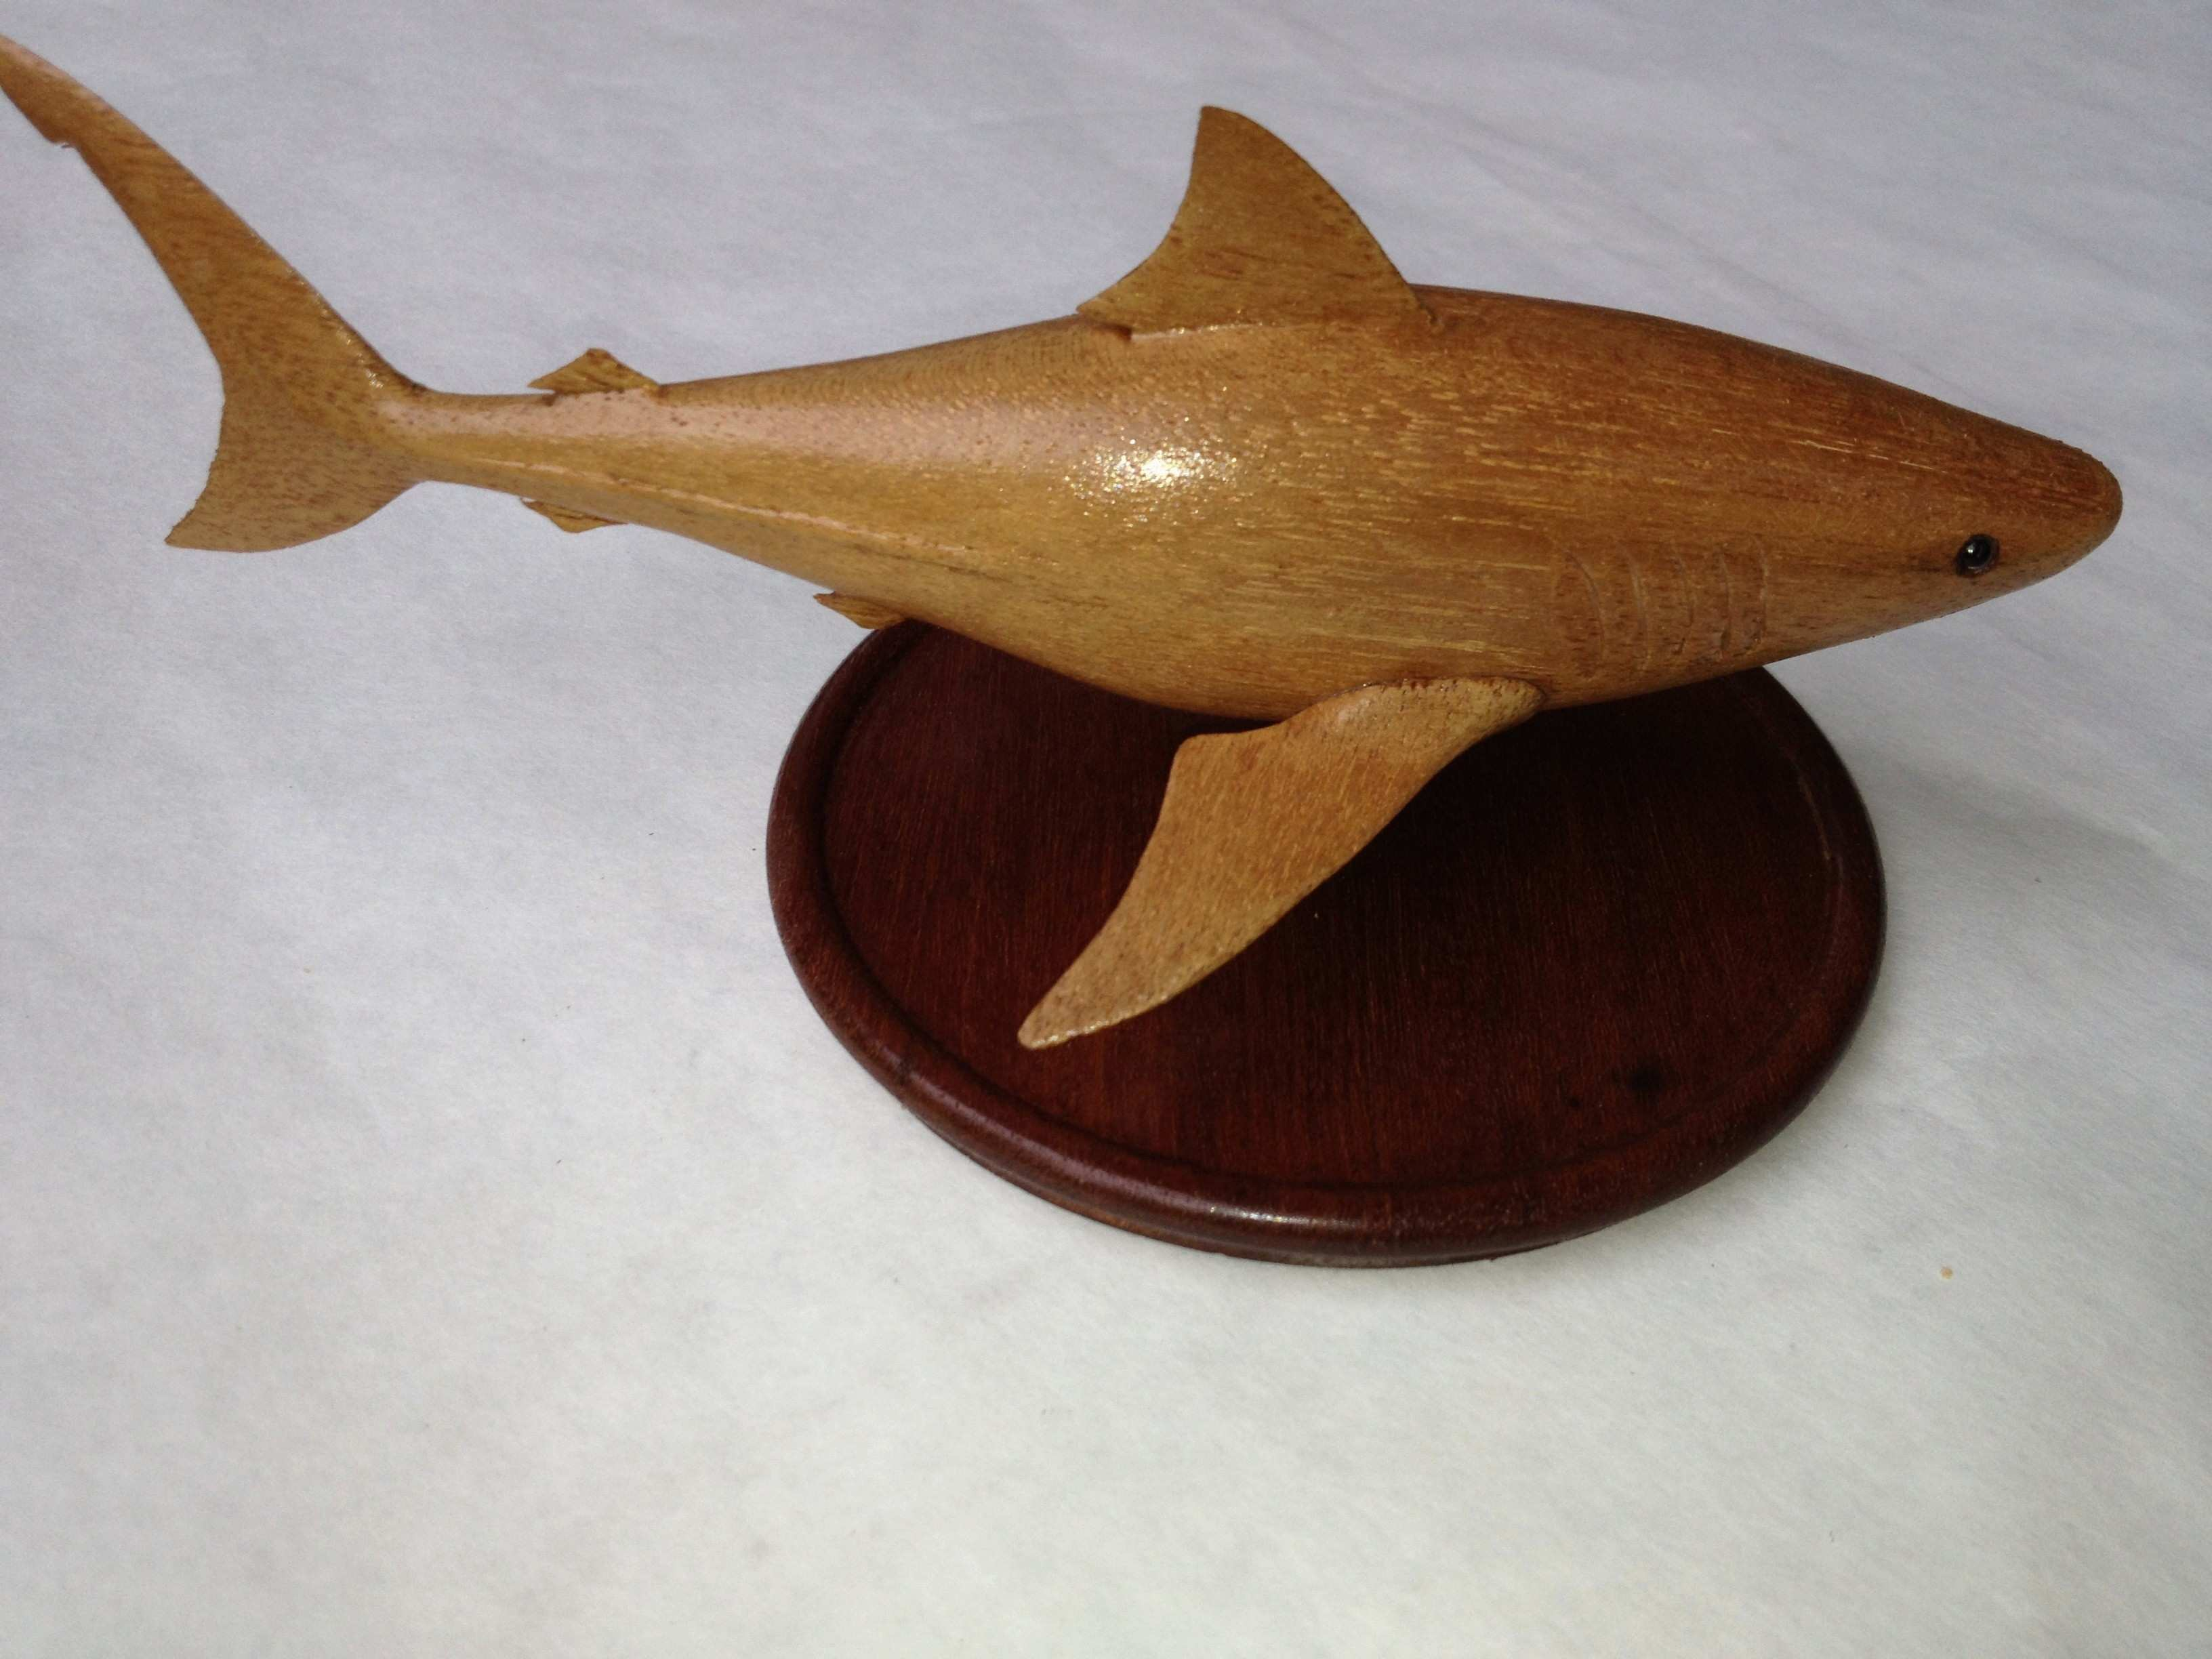 Shark Home Decor Beautiful Decor Shark Decor Shark Decor 0d' Decors